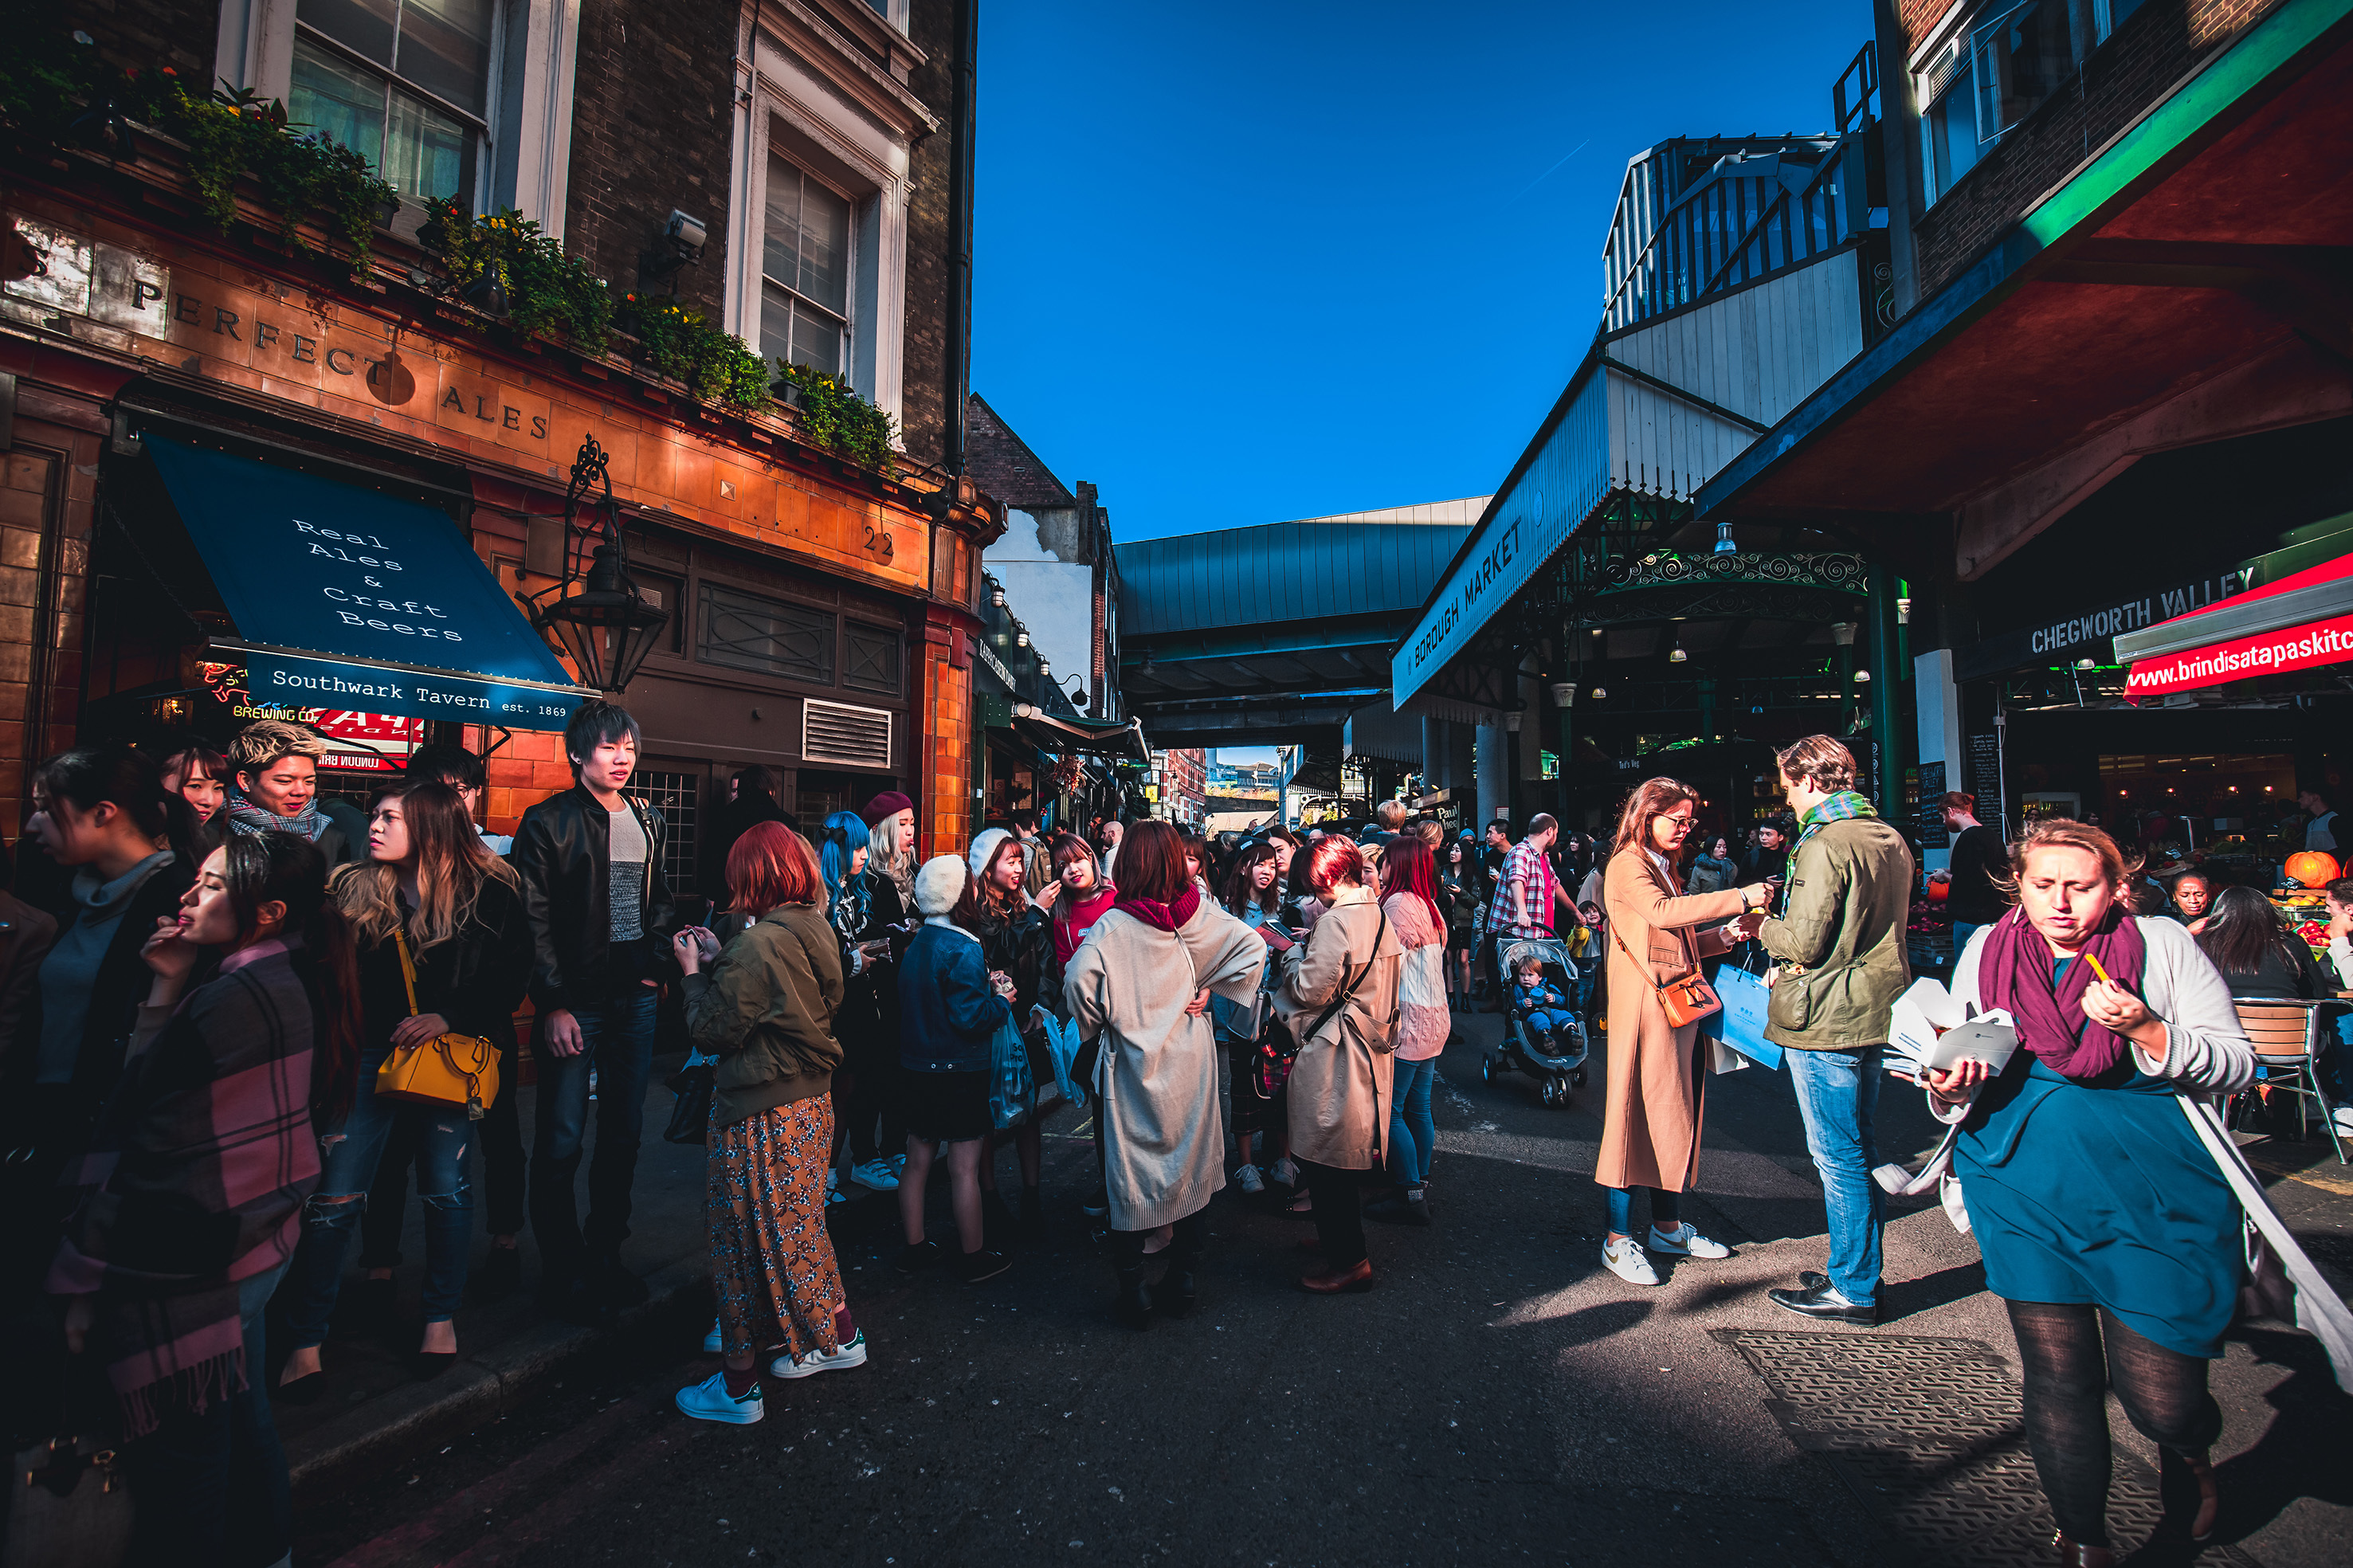 Borough area guide - Find the best markets, pubs and things